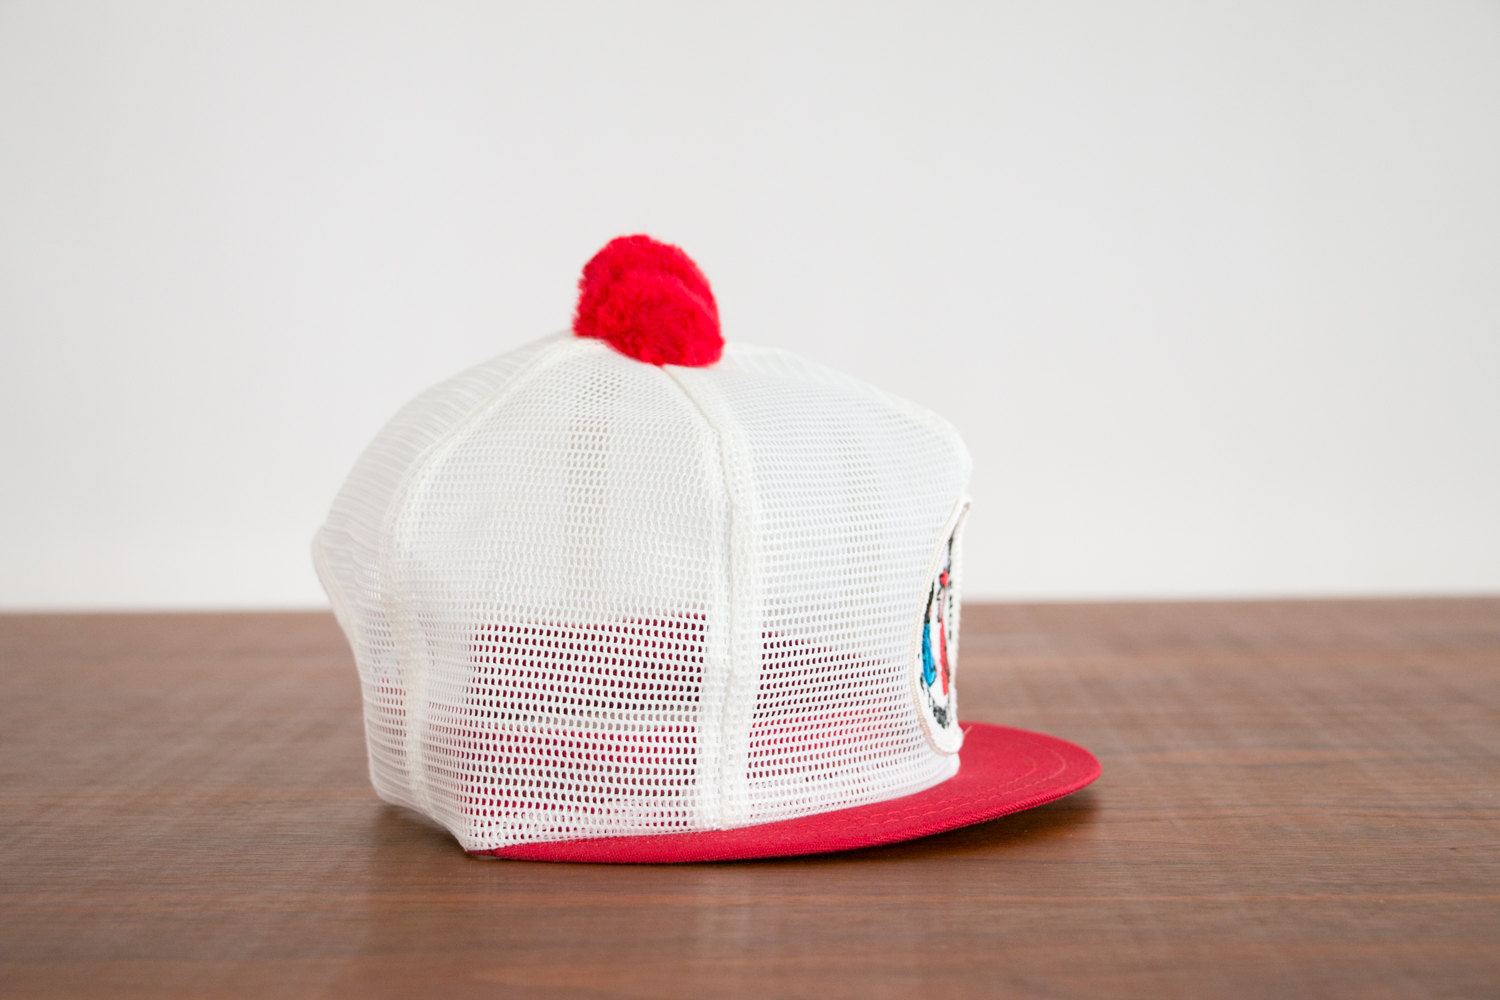 Vintage 1960's Red & White Mesh Trucker Hat - FARM STORE CONFERENCE, Snap back - Hipster, Indie, Retro